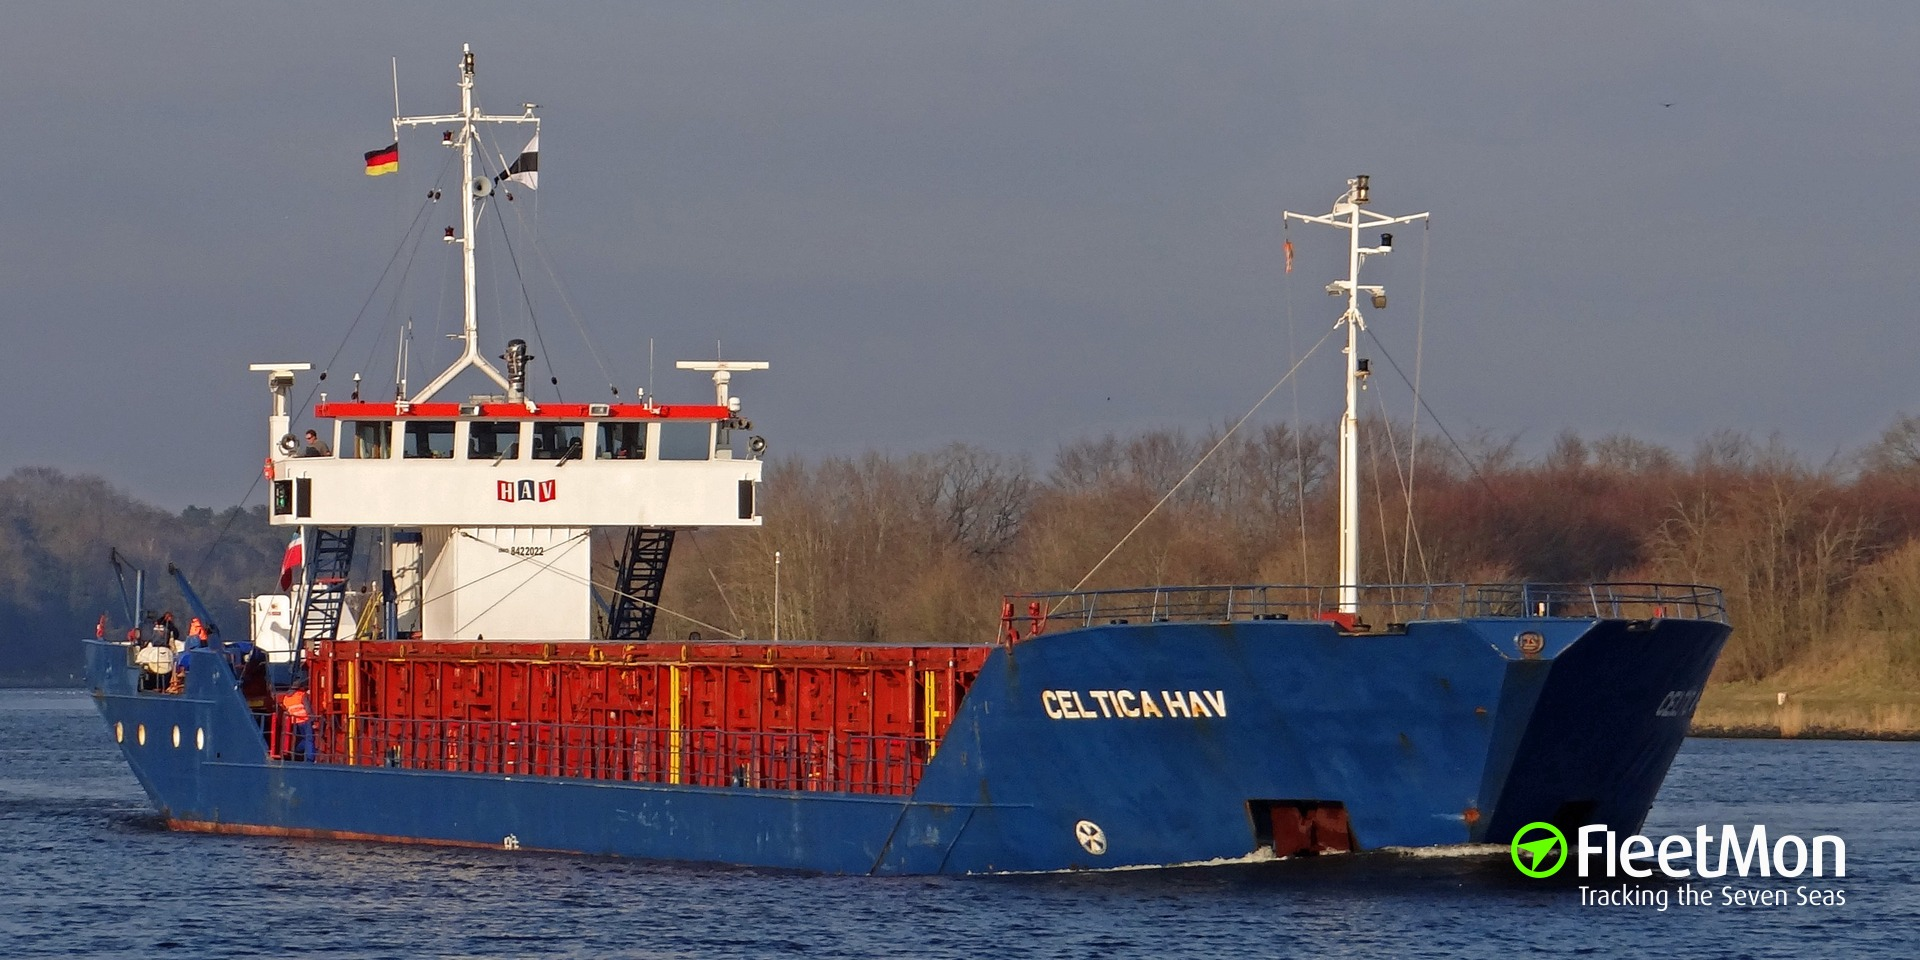 Celtica Hav returned to Aberdeen with fire in cargo holds